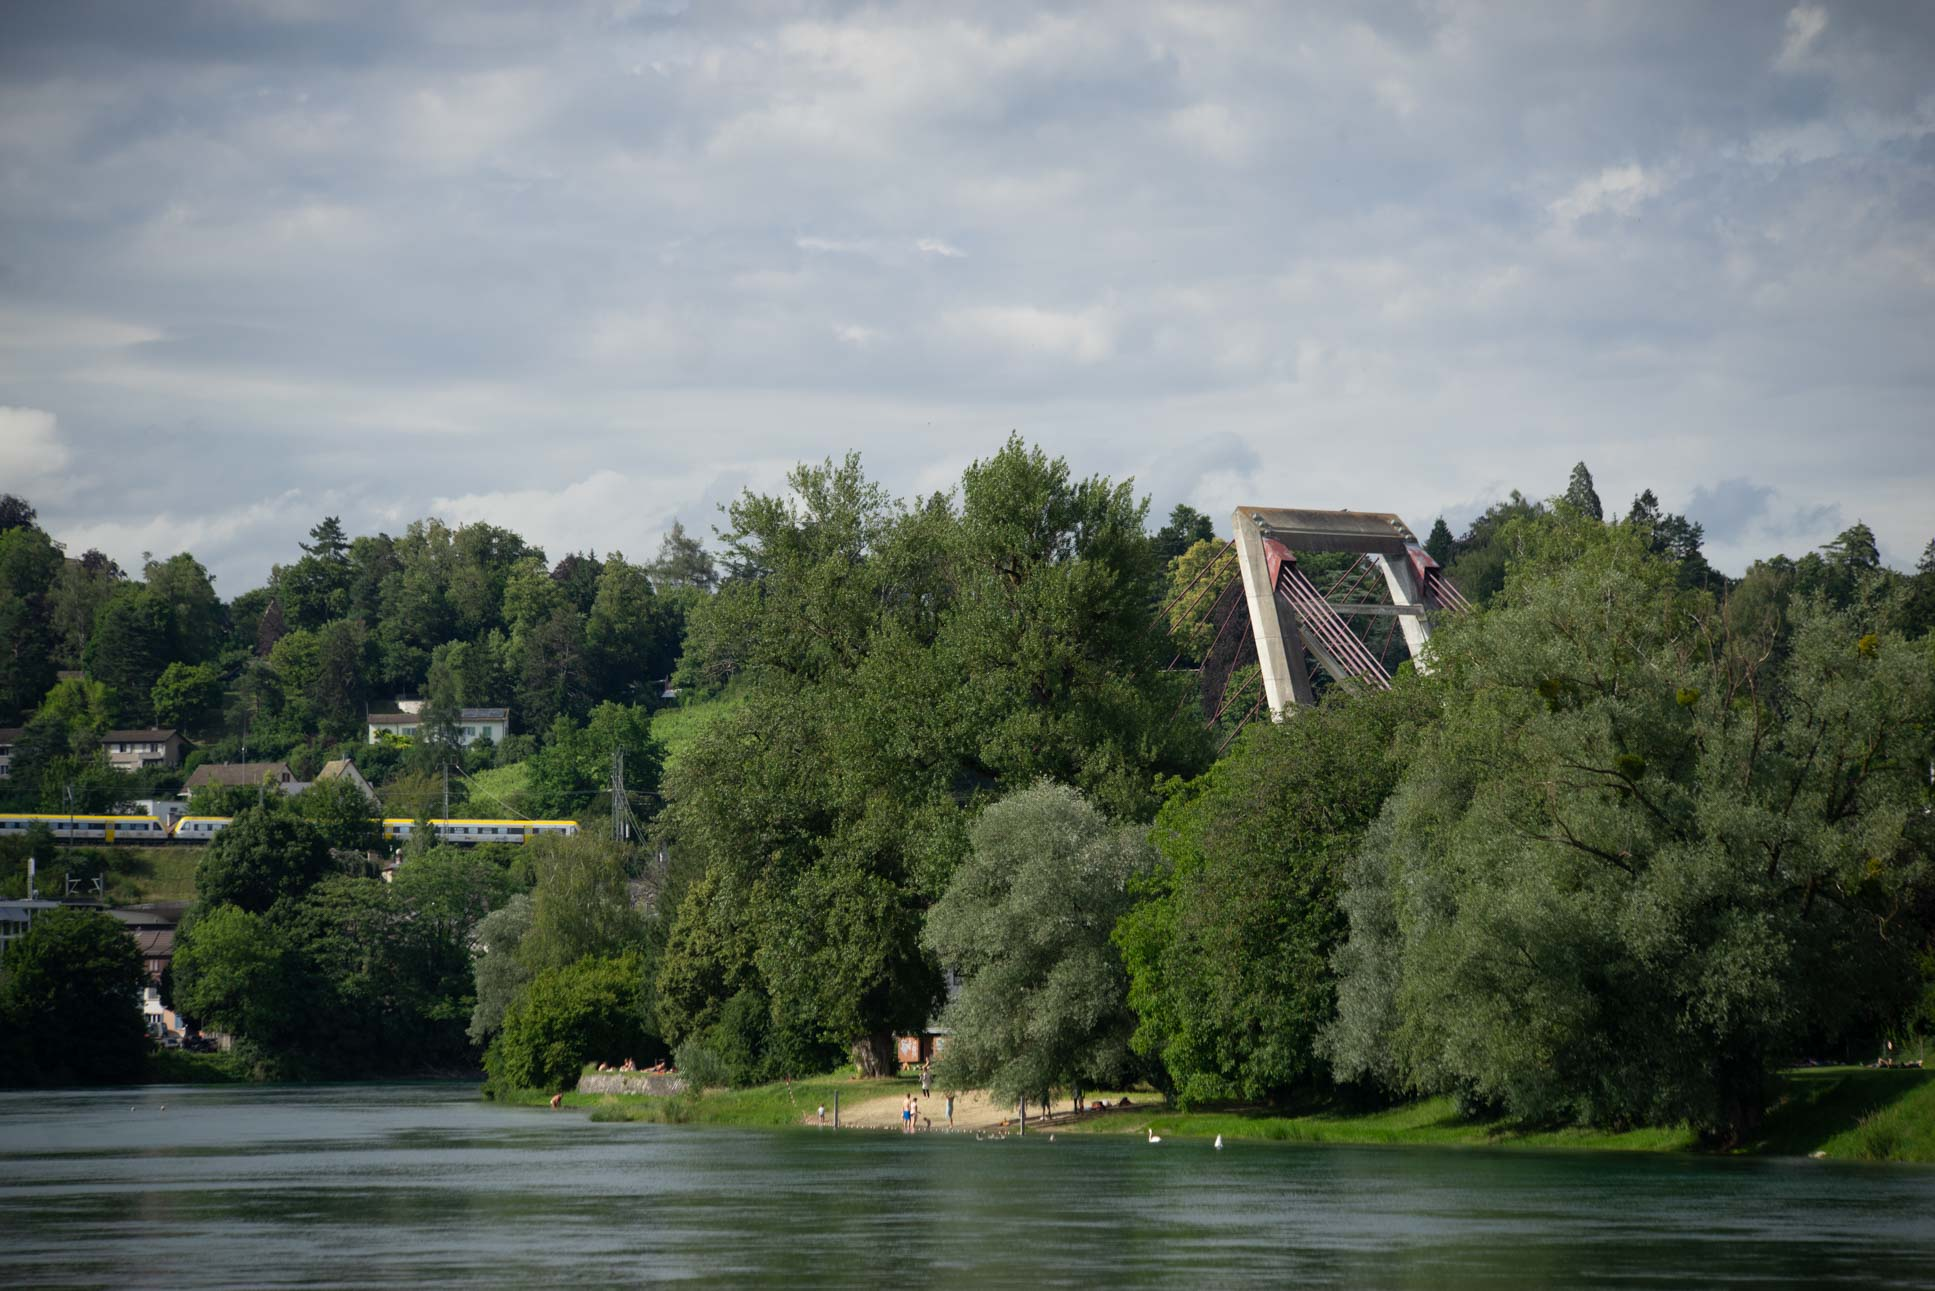 The pylon of the Rheinbrücke N4 is peeking out over the trees.